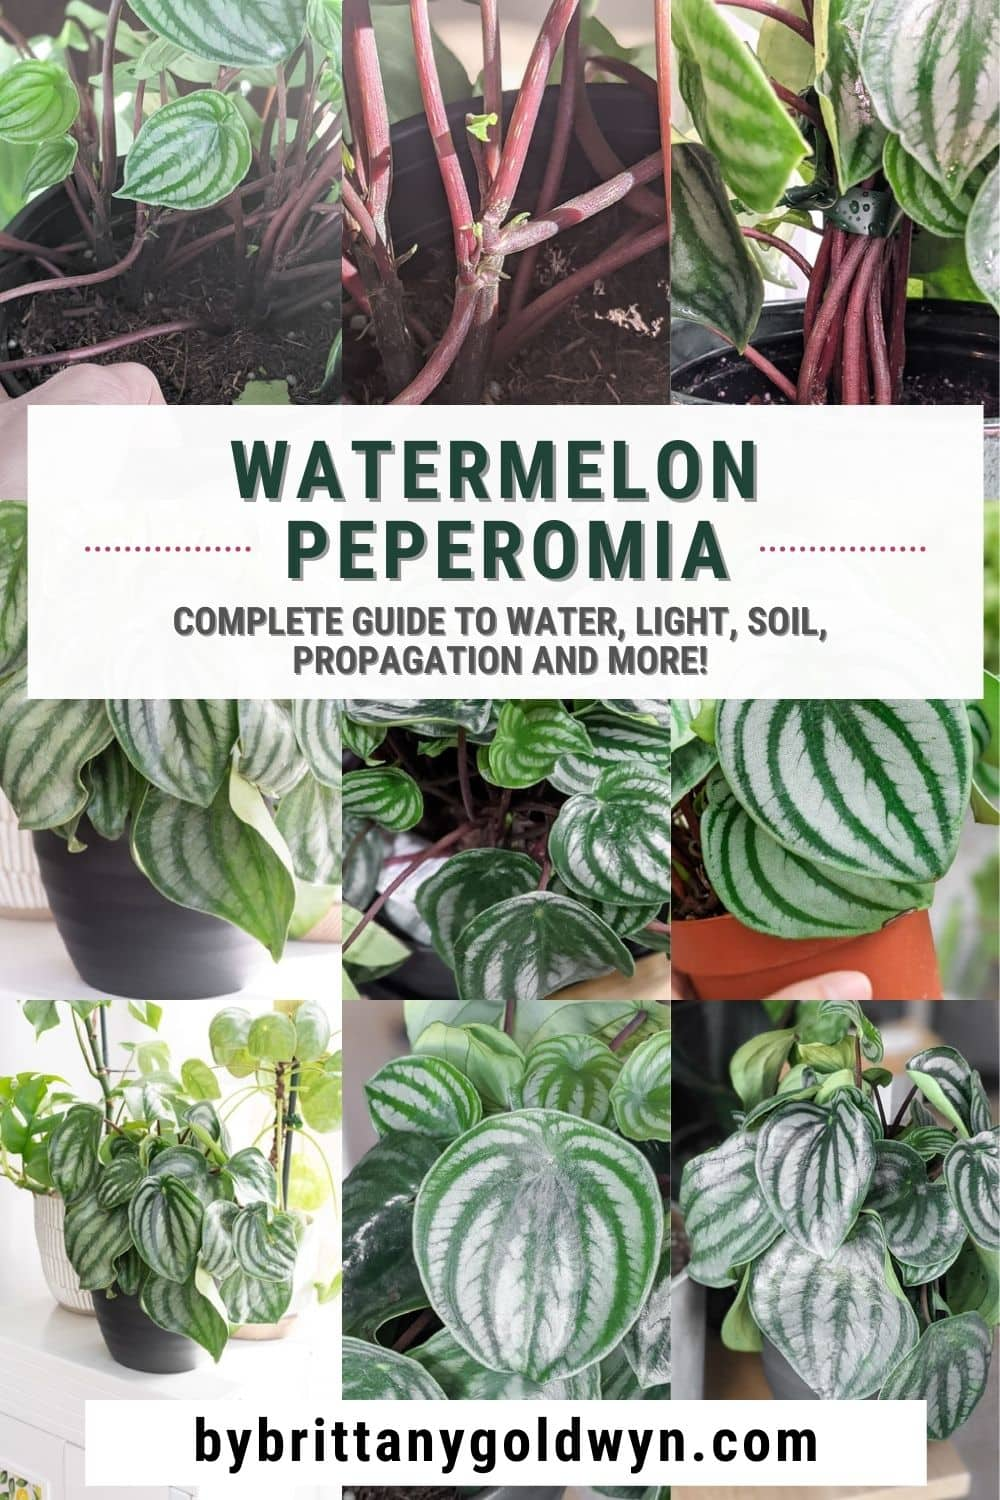 image collage of watermelon peperomia with text overlay